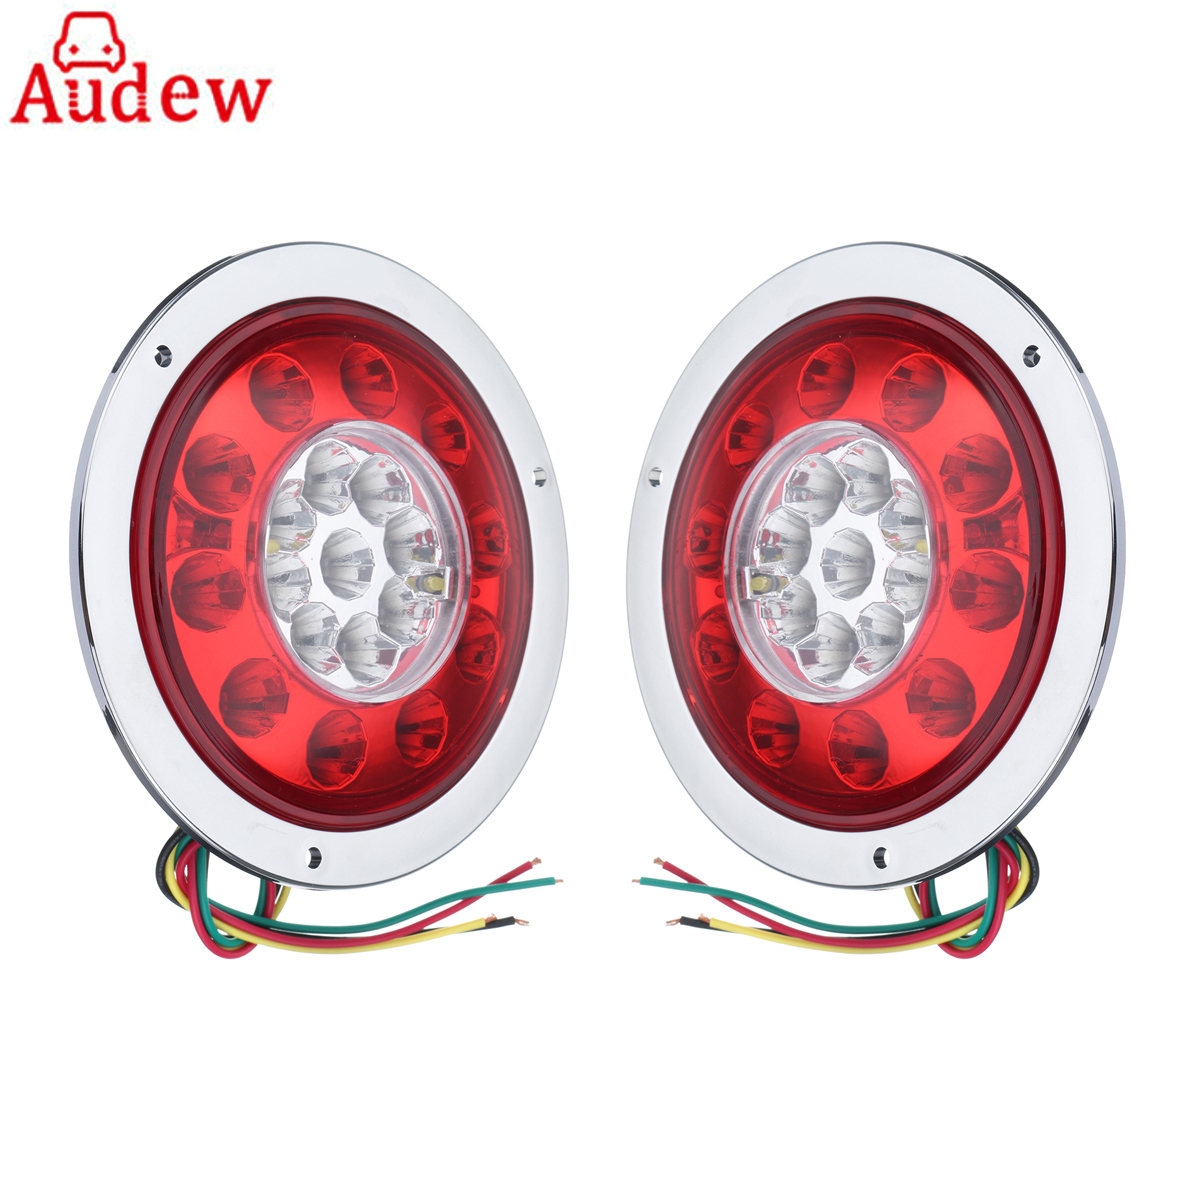 2pcs Waterproof Car Trailer Truck 19 LED Round Tail Brake Light Turn Signal Stop Light Side Lamp Yellow&Red